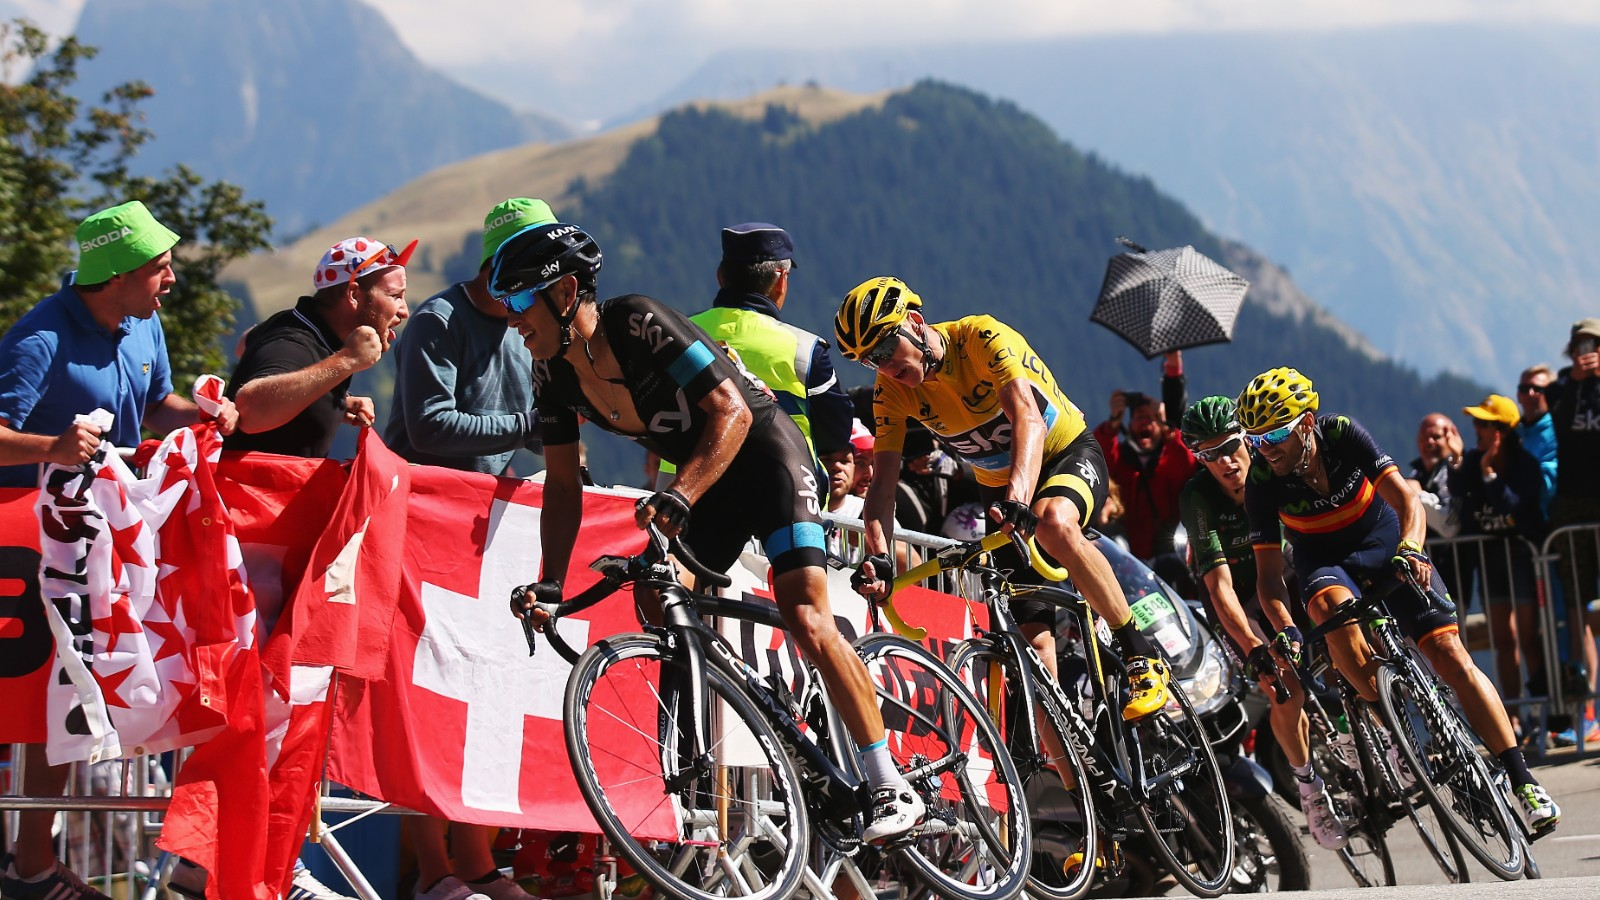 tour de france fast facts cnn. Black Bedroom Furniture Sets. Home Design Ideas